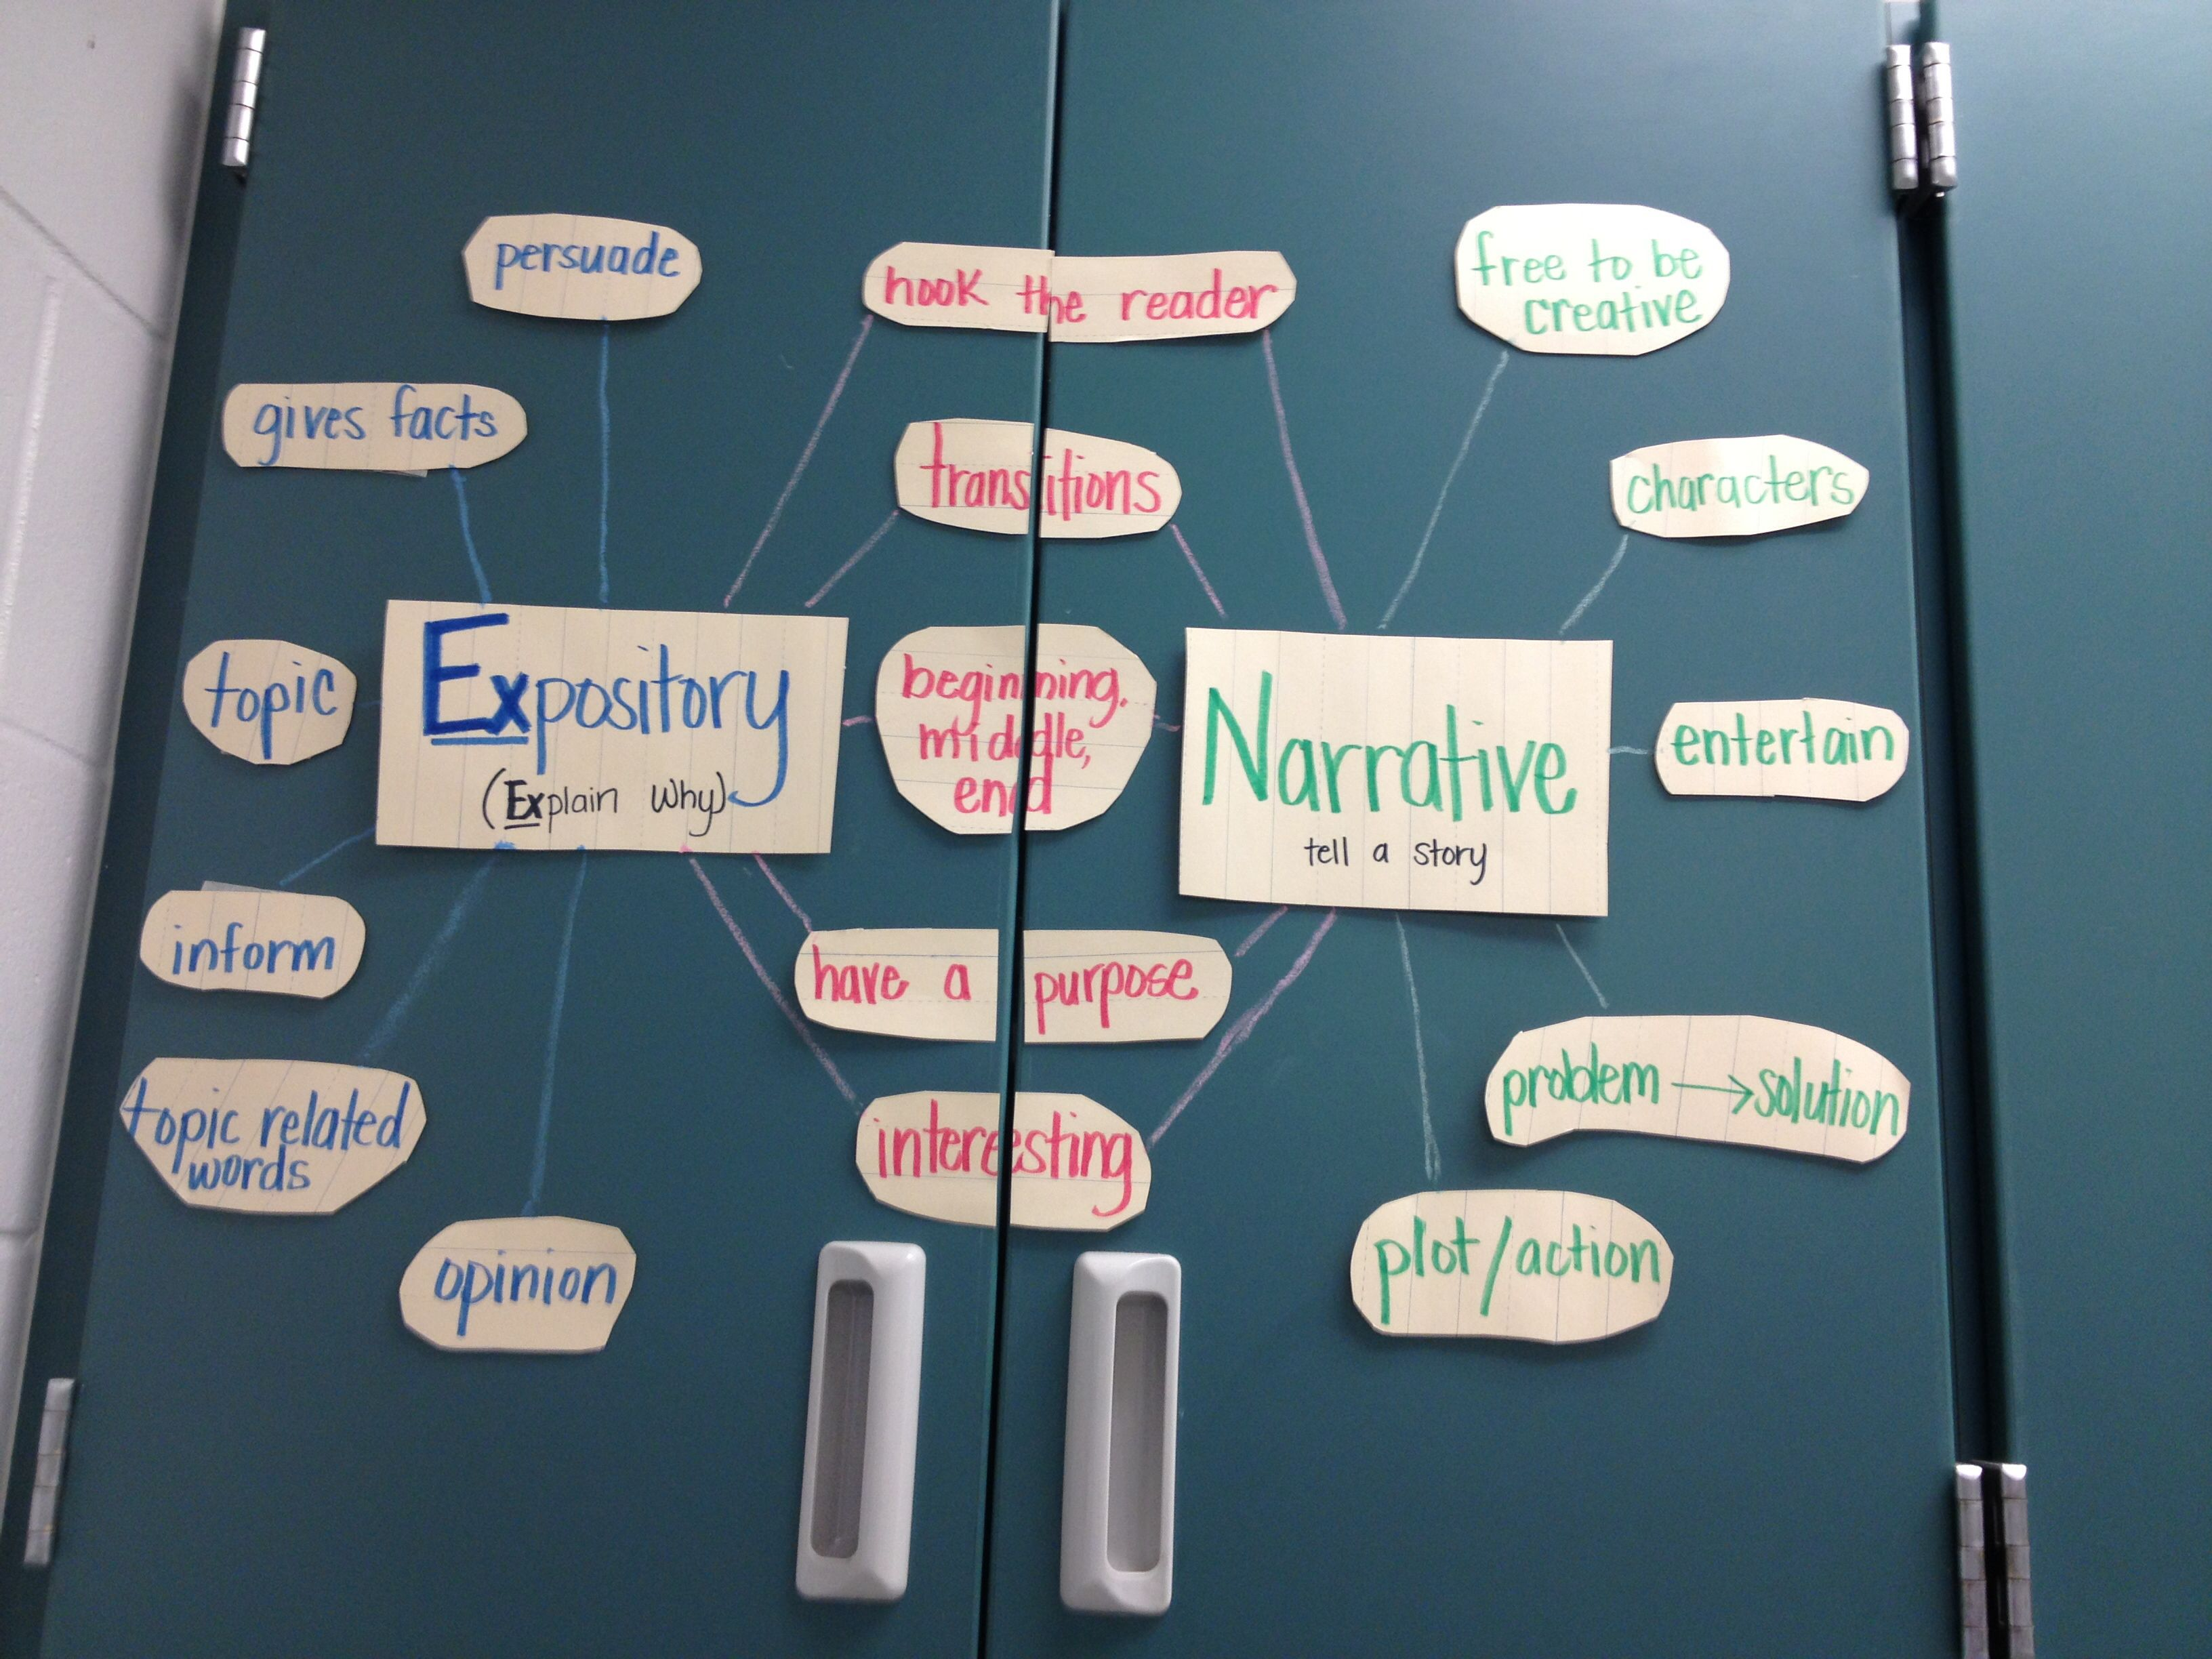 4th Grade Writing Thinking Map Double Bubble To Compare And Contrast Narrative And Expository